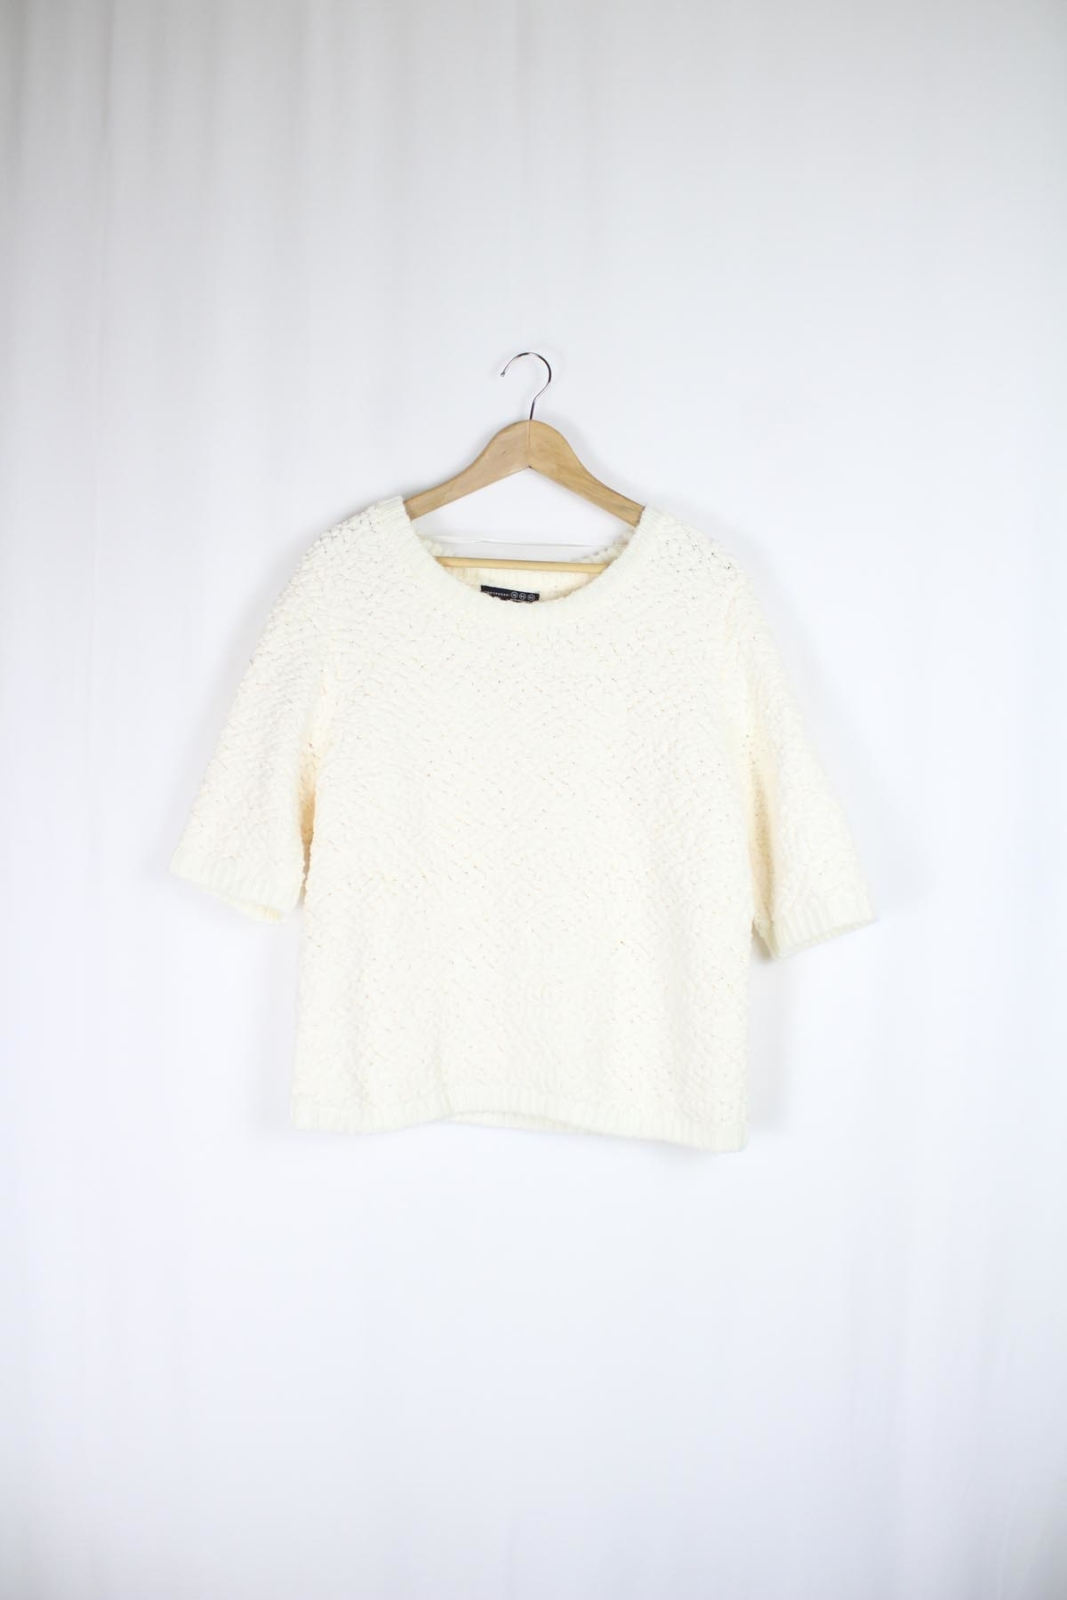 Second-hand Clothing - Sale, Women, Jumpers & Cardigans, Second-Hand Clothing